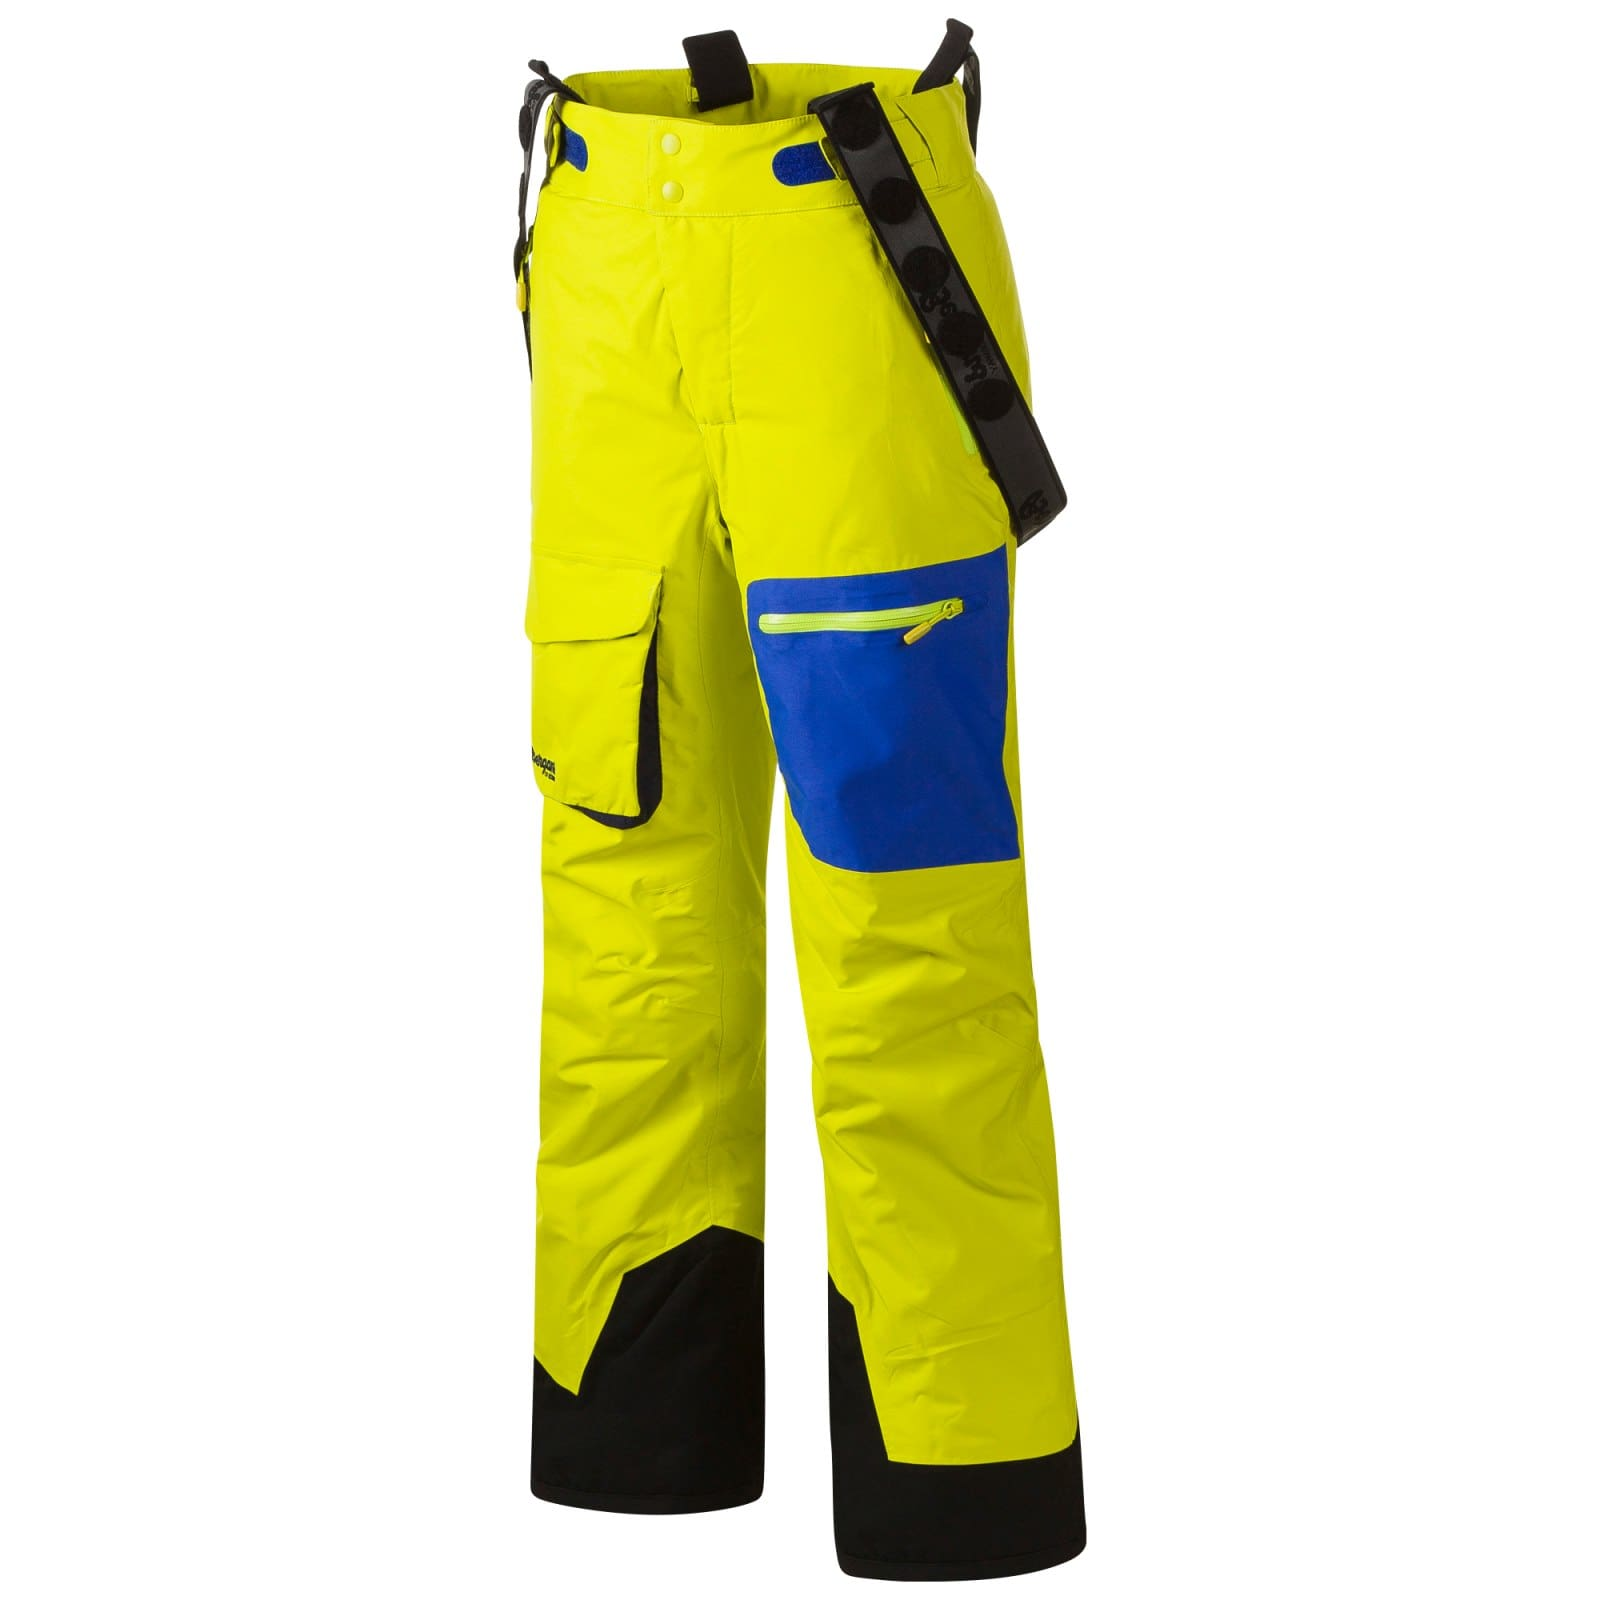 8b7386e1 Buy Bergans Knyken Ins Youth Pant from Outnorth